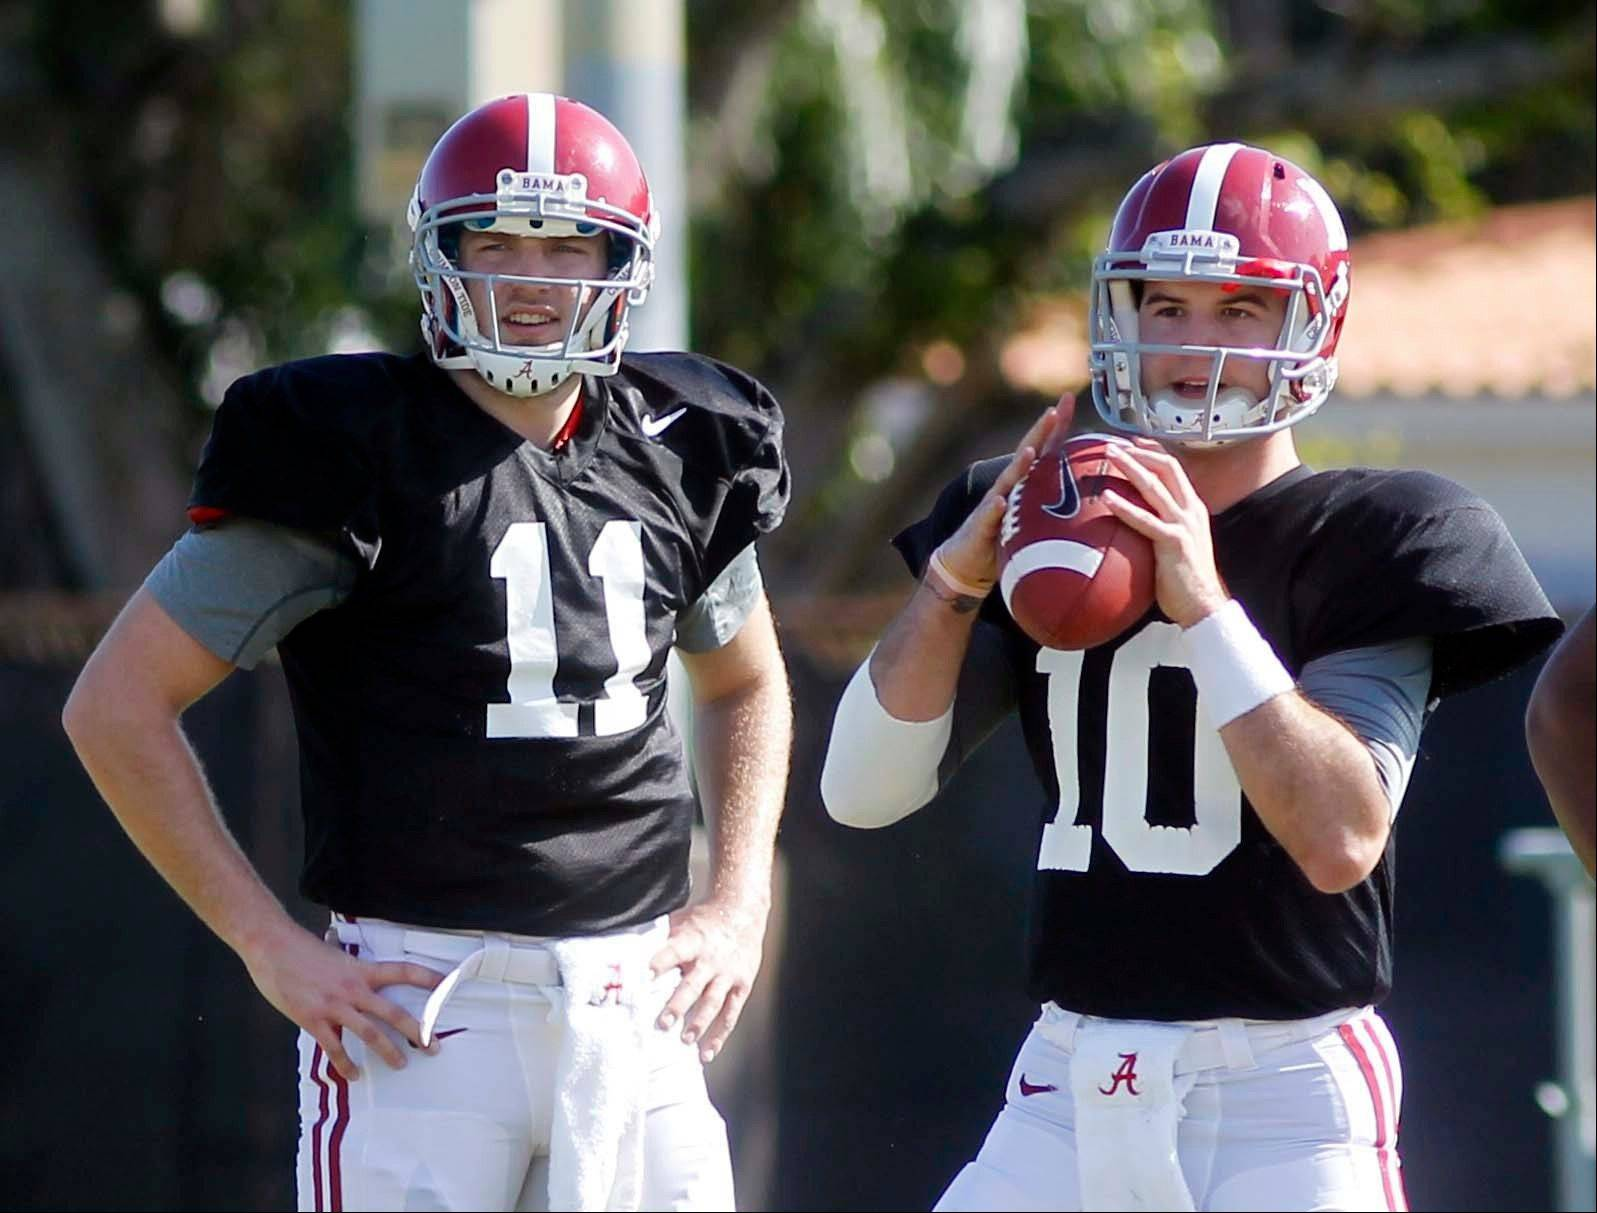 Alabama quarterbacks AJ McCarron (10) and Alec Morris (11) workout Thursday during practice at Barry University in Miami Shores, Fla.